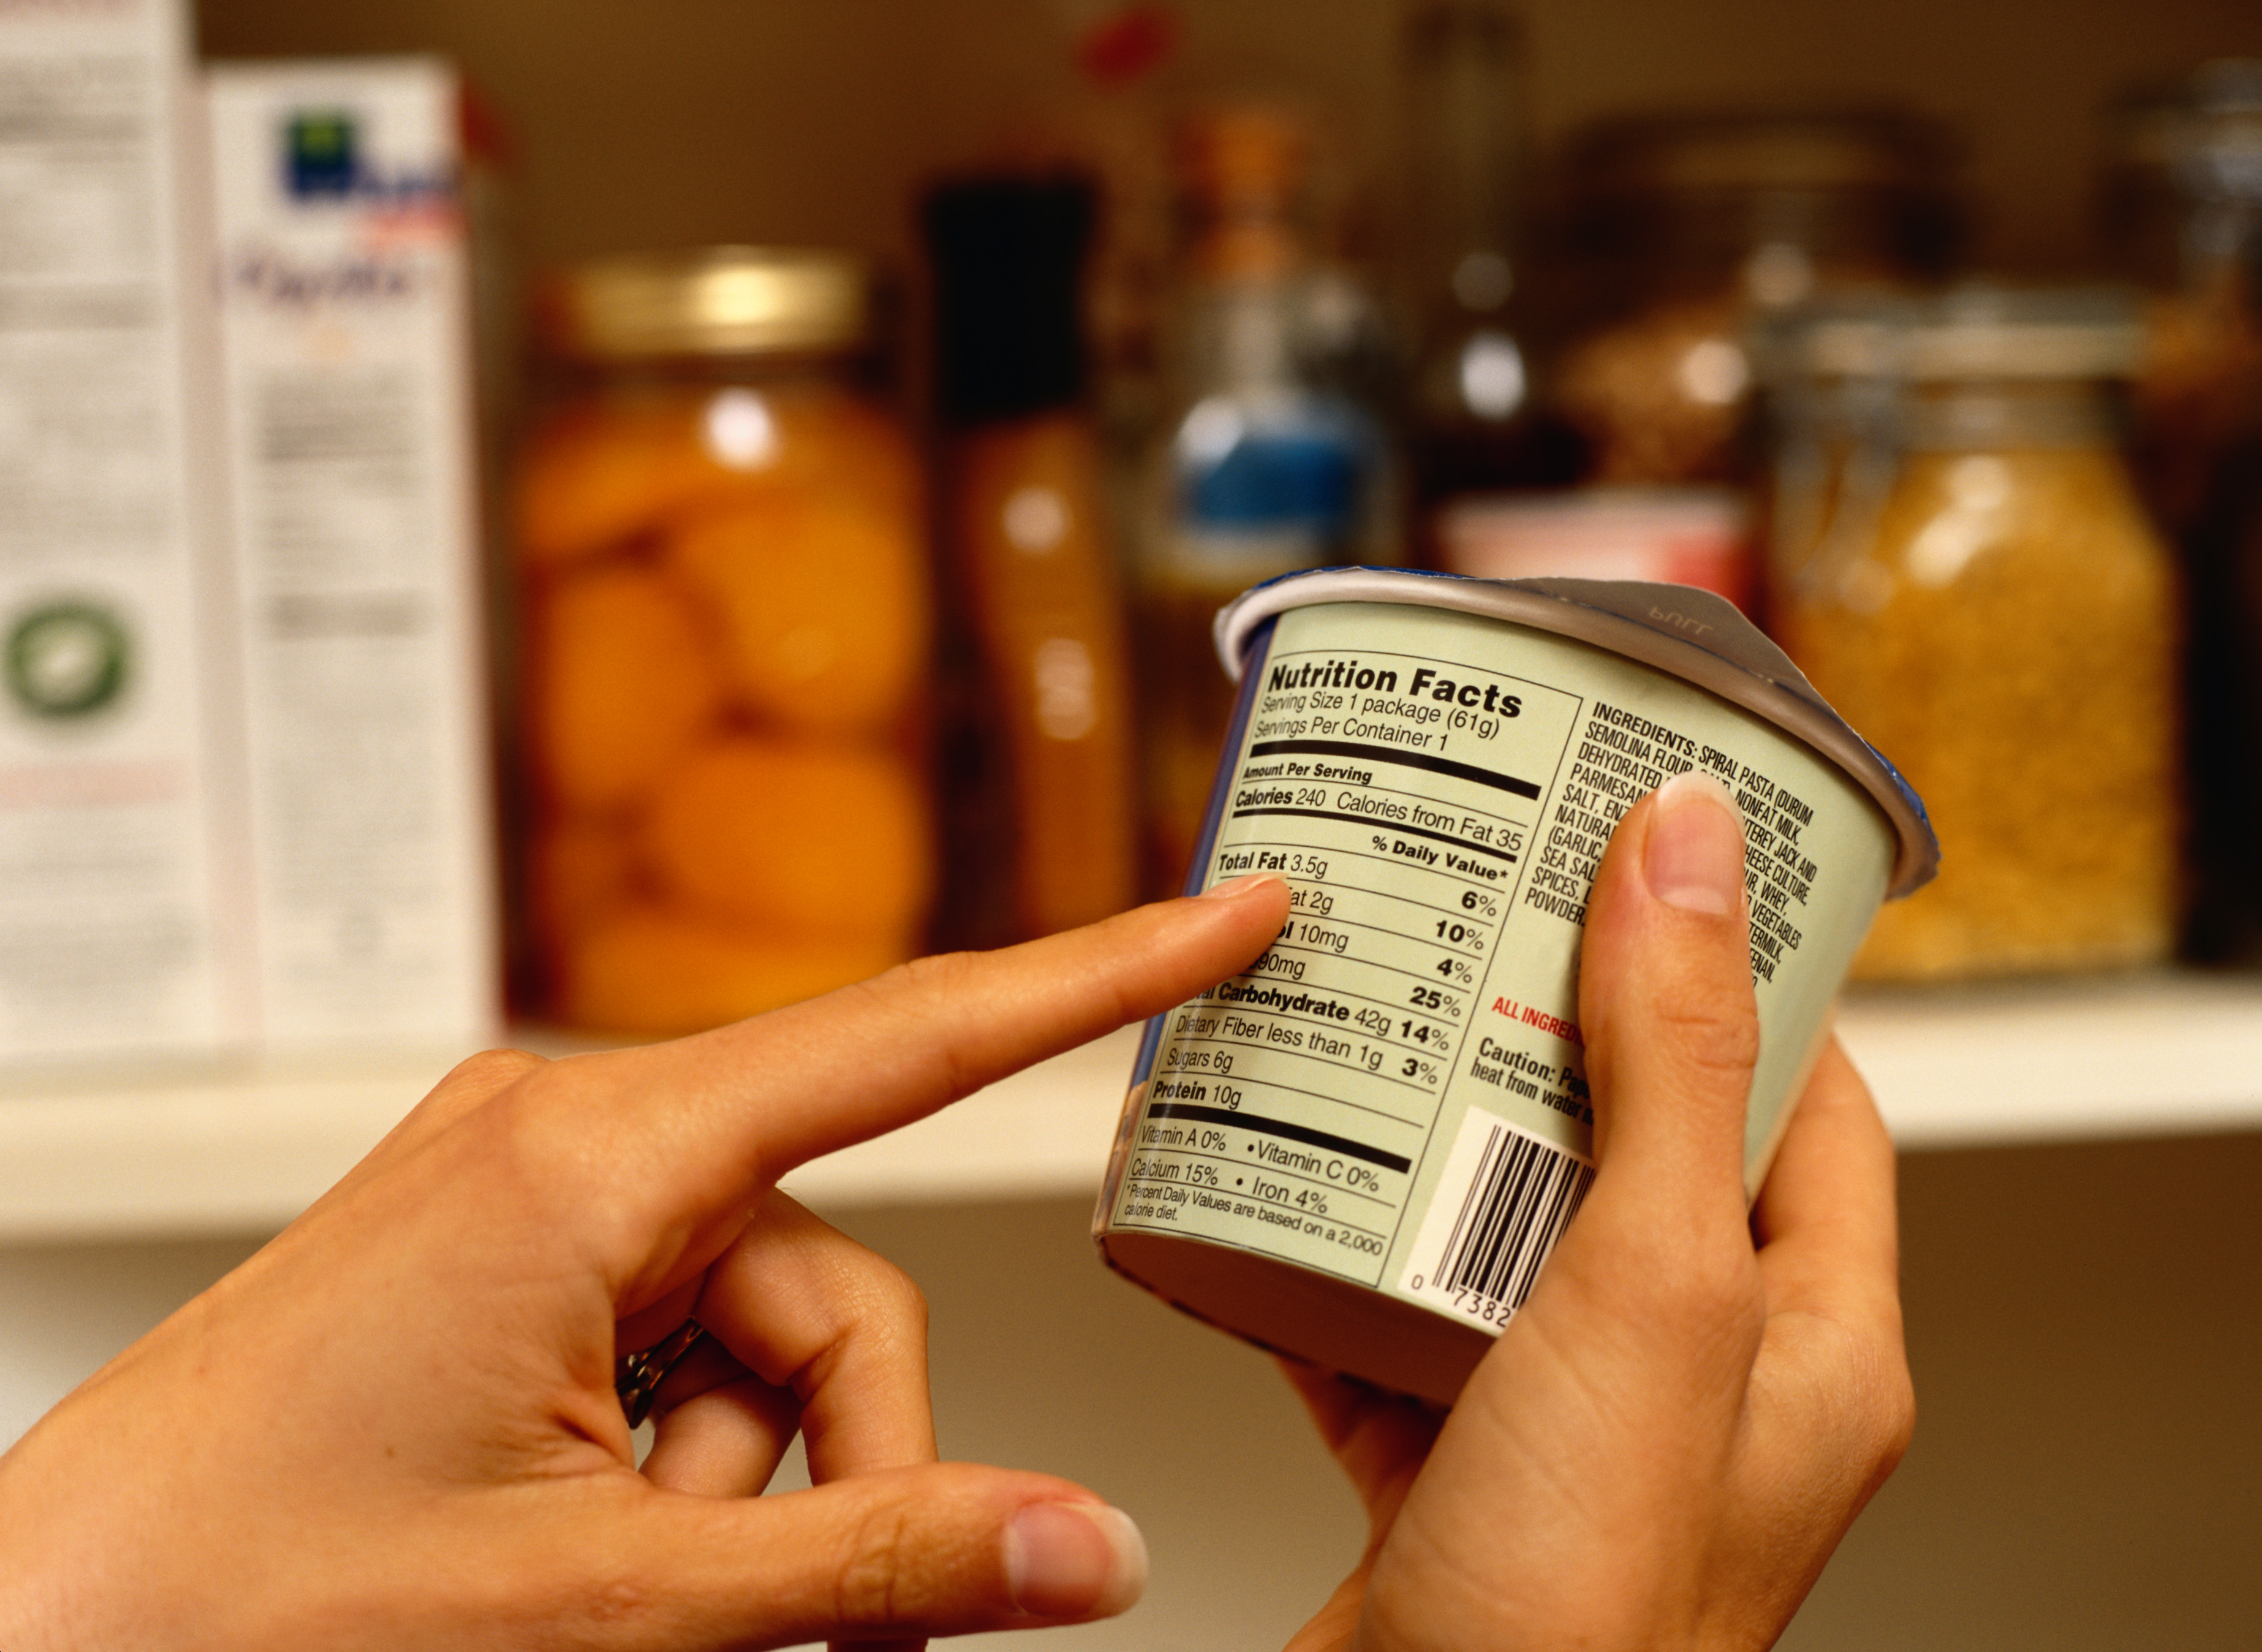 How to understand nutrition labels